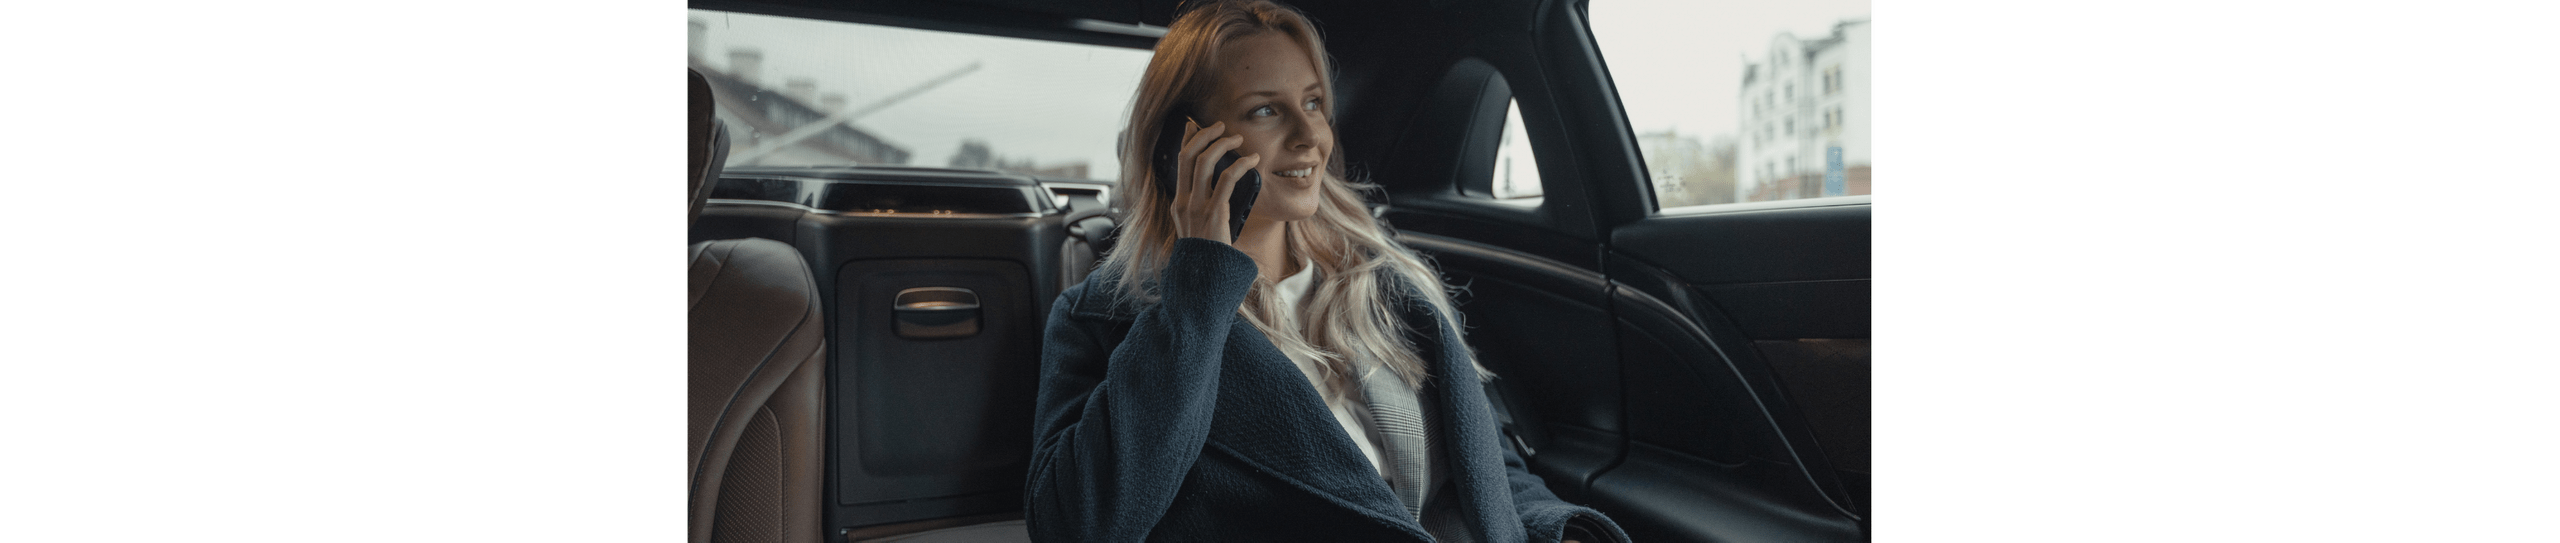 A blonde woman in a car holding a phone up to her ear